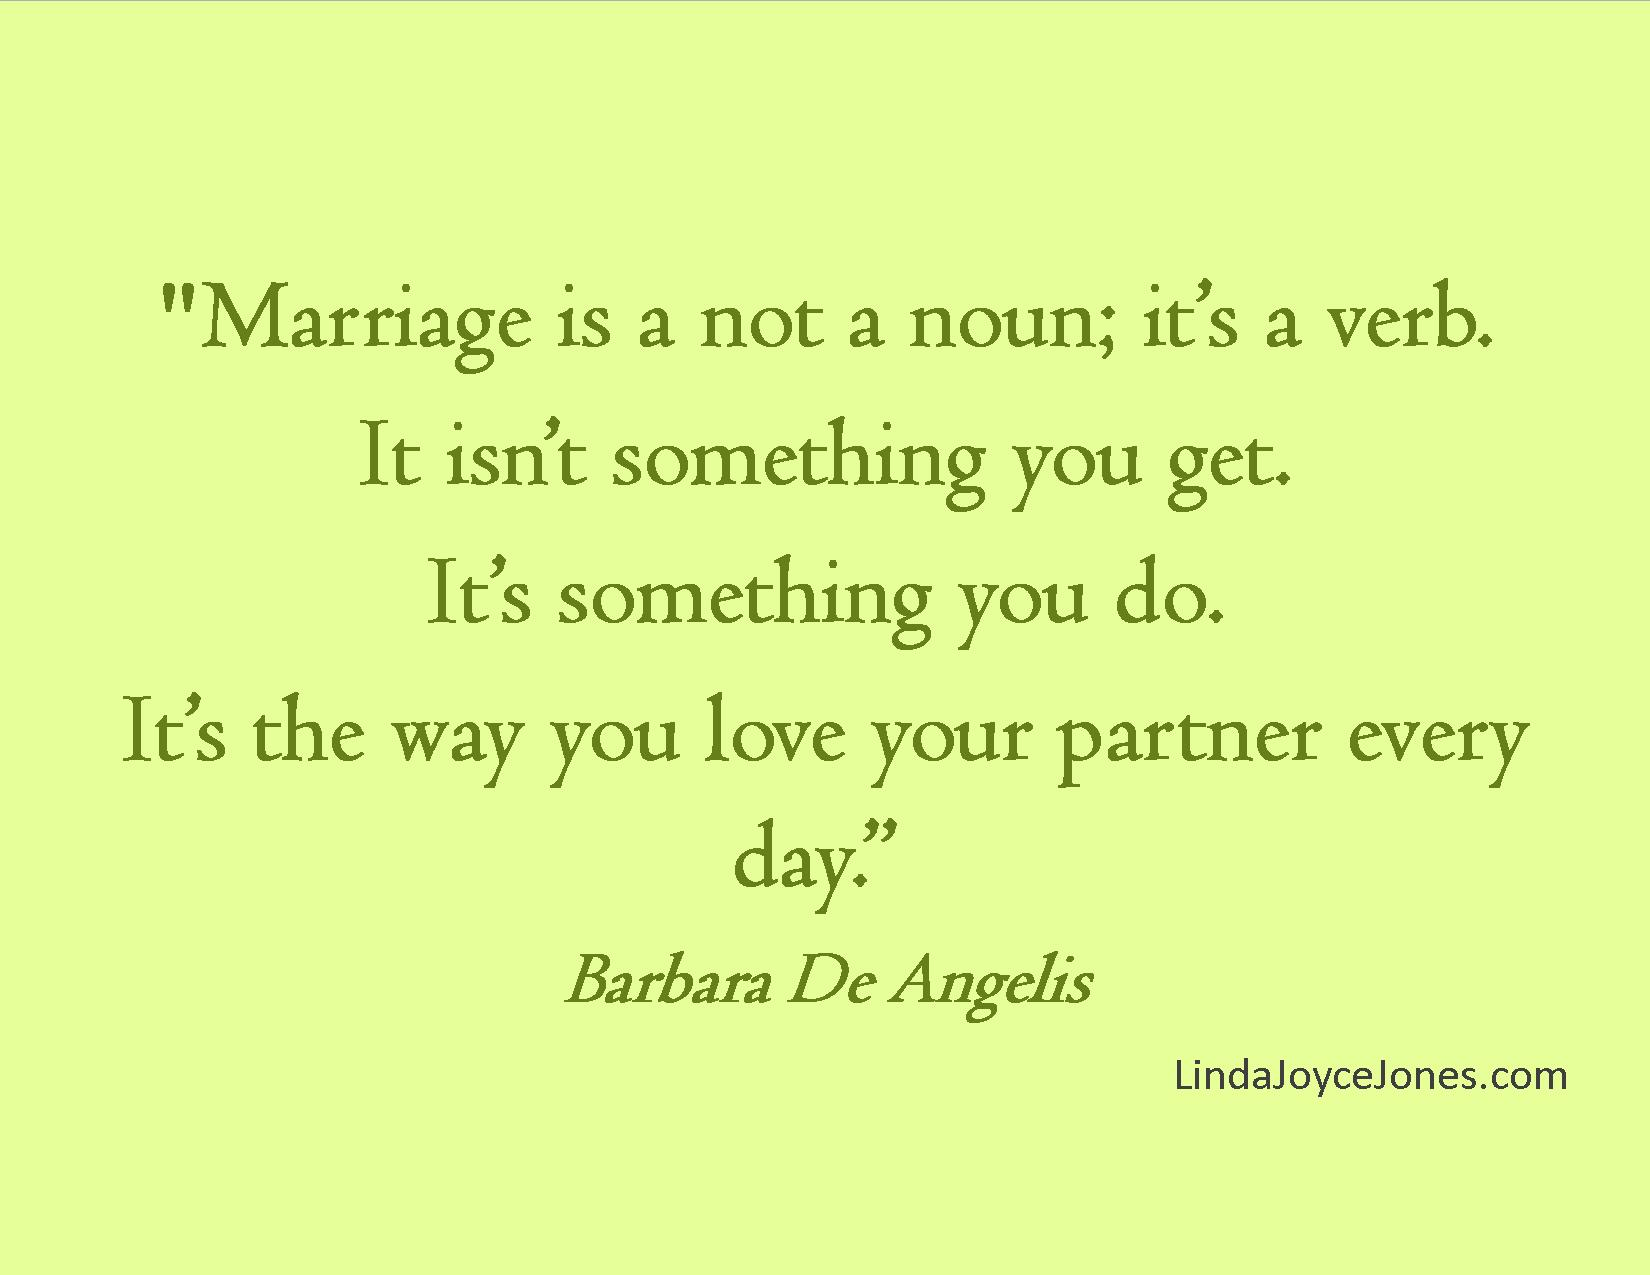 Marriage Love Quotes : Quotes to Live By; Marriage Quote Linda Joyce Jones